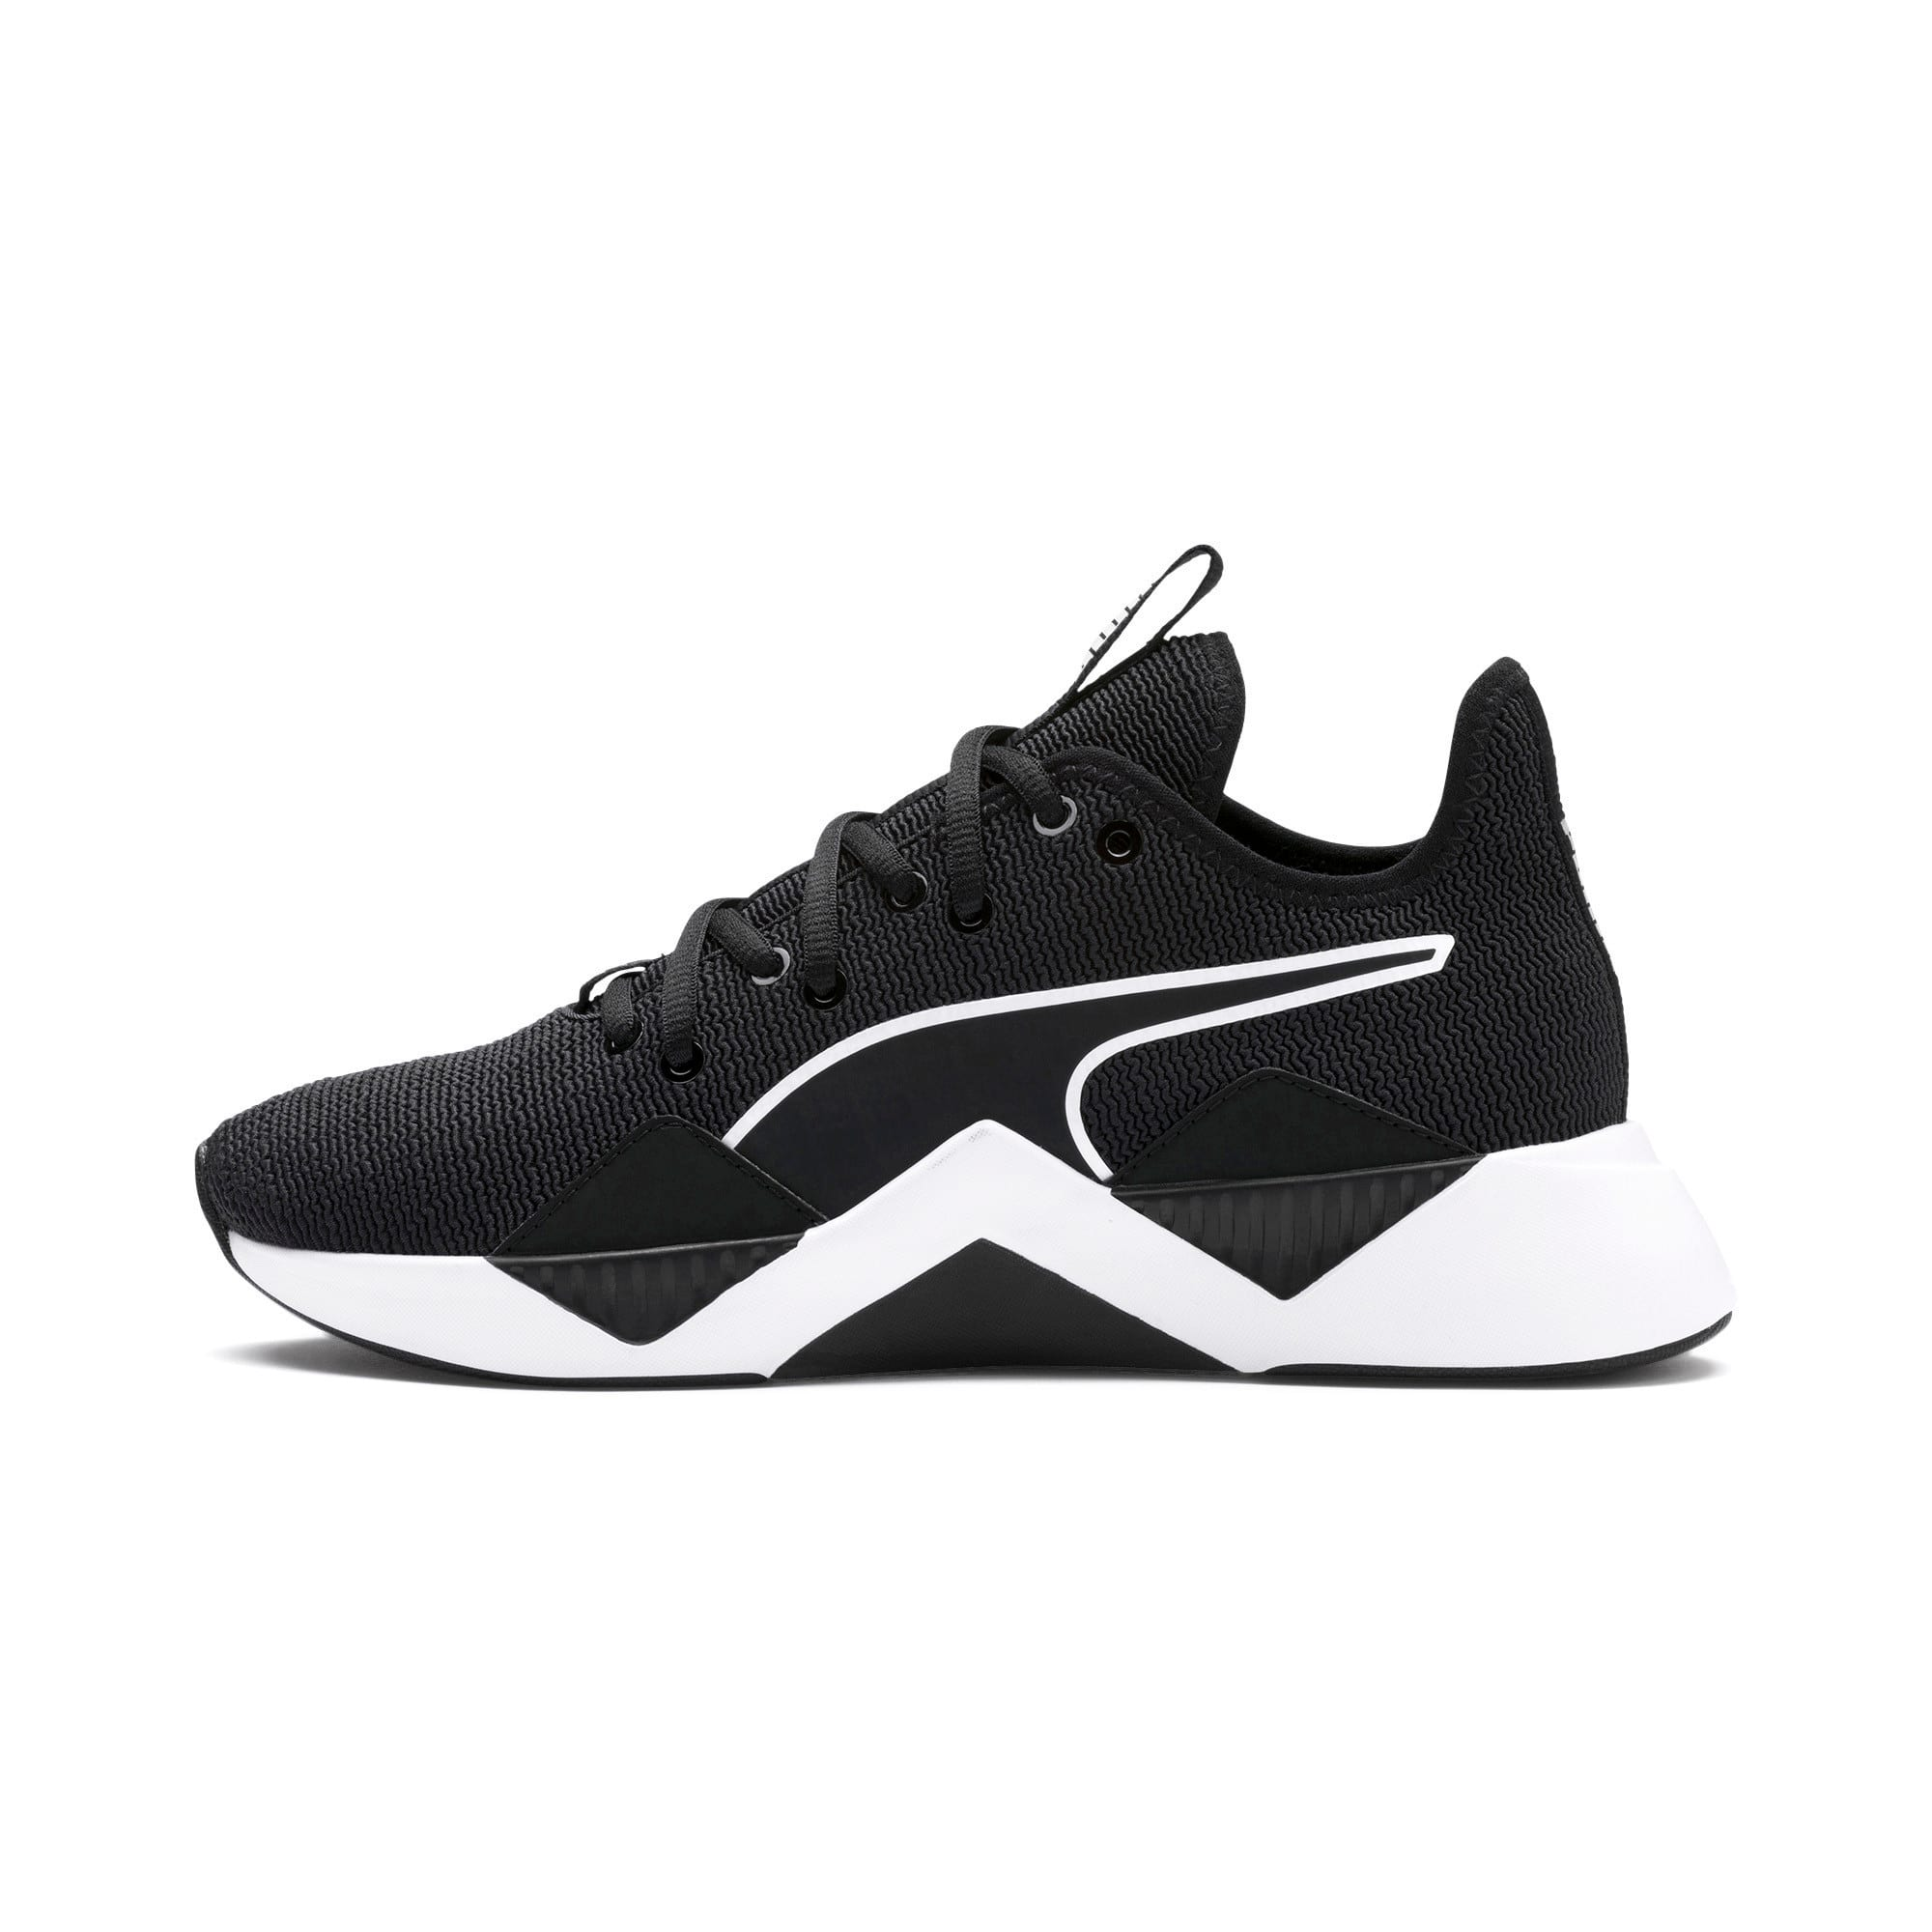 Thumbnail 1 of The Black Incite FS Wave Wn's, Puma Black-Puma White, medium-IND